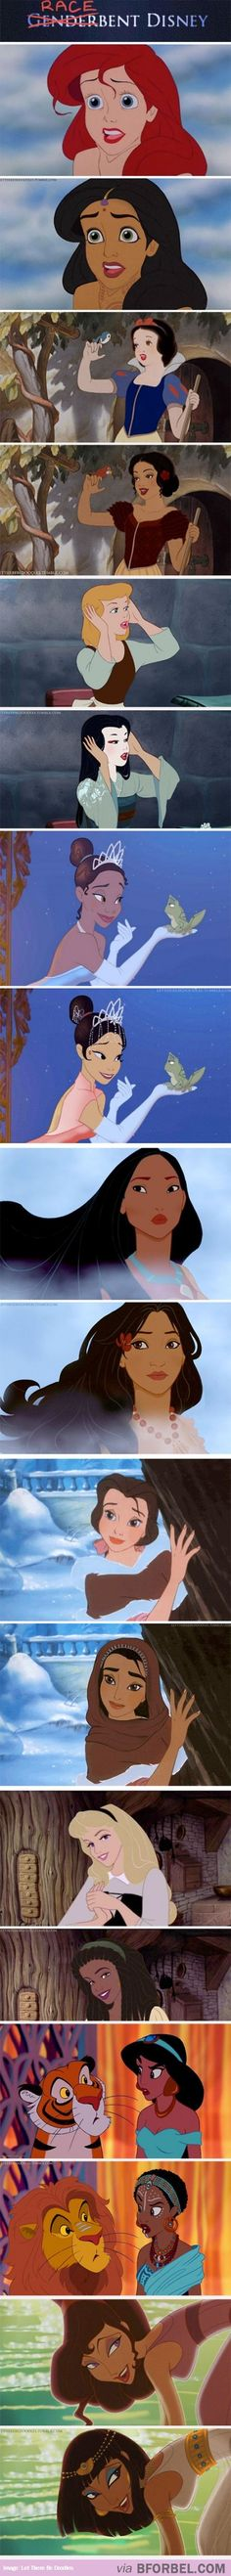 9 Disney Princesses Now Of Different Races… Very interesting. I actually prefer these to the originals!